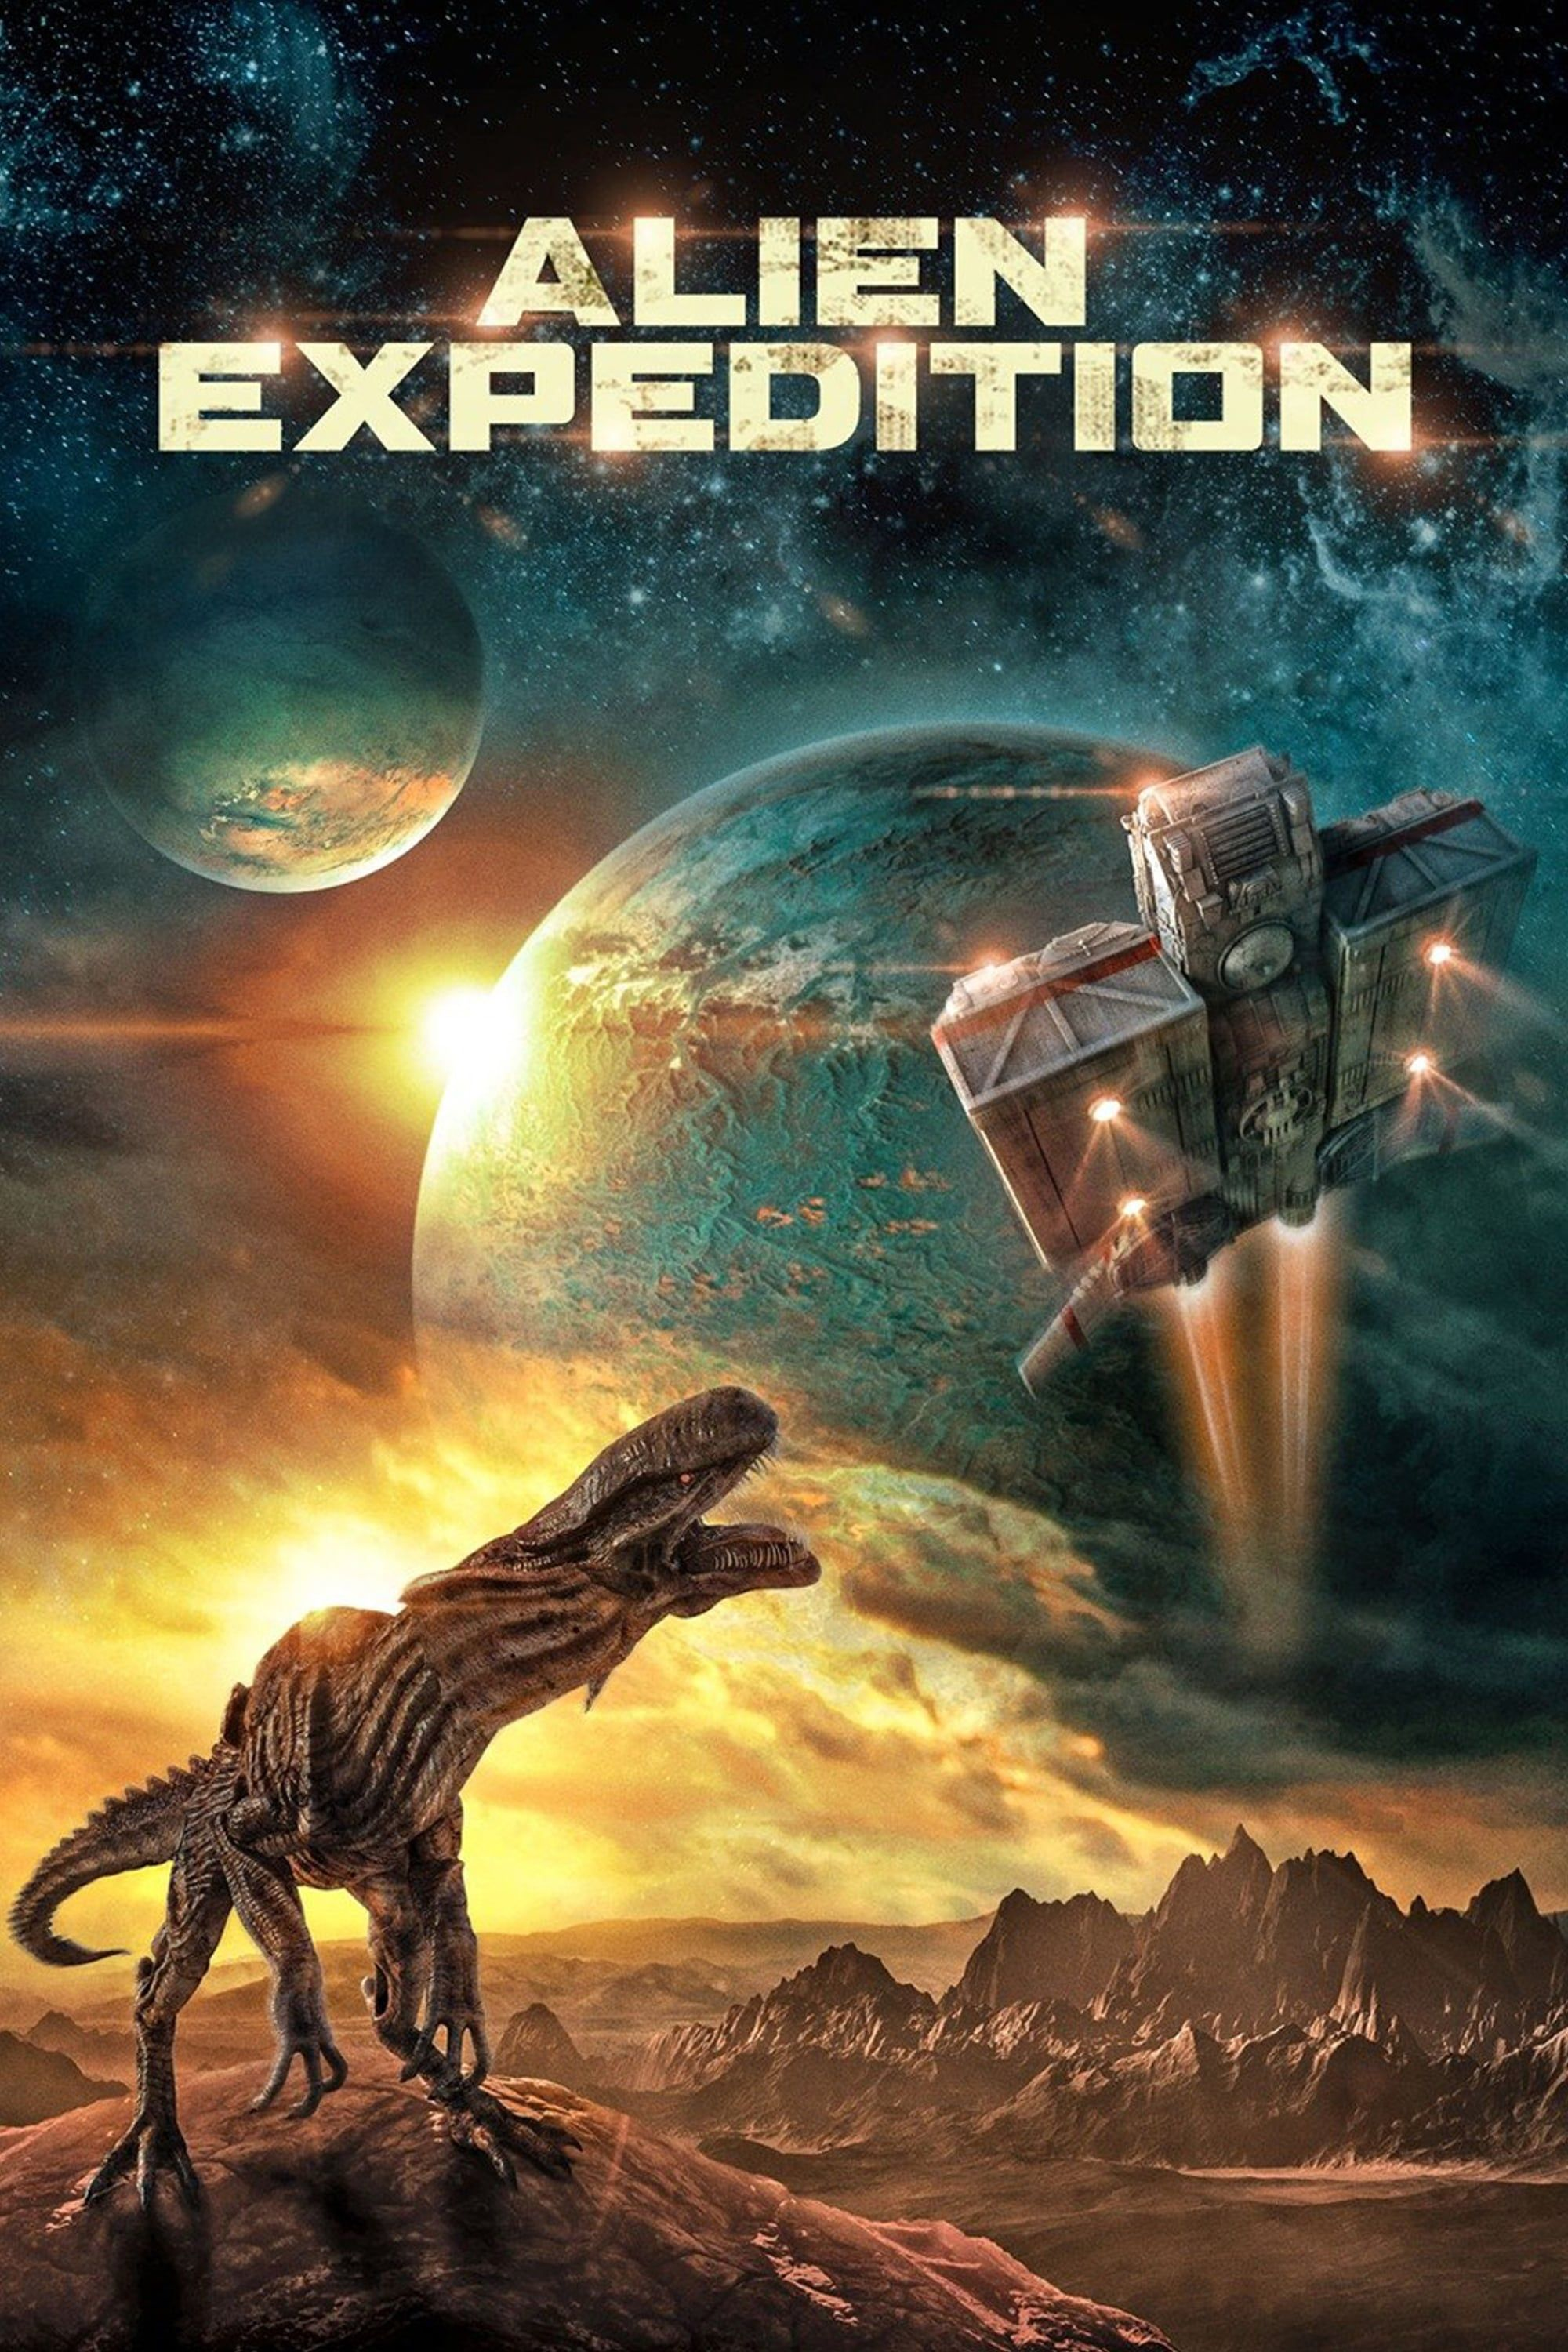 alien expedition - voyage into fear